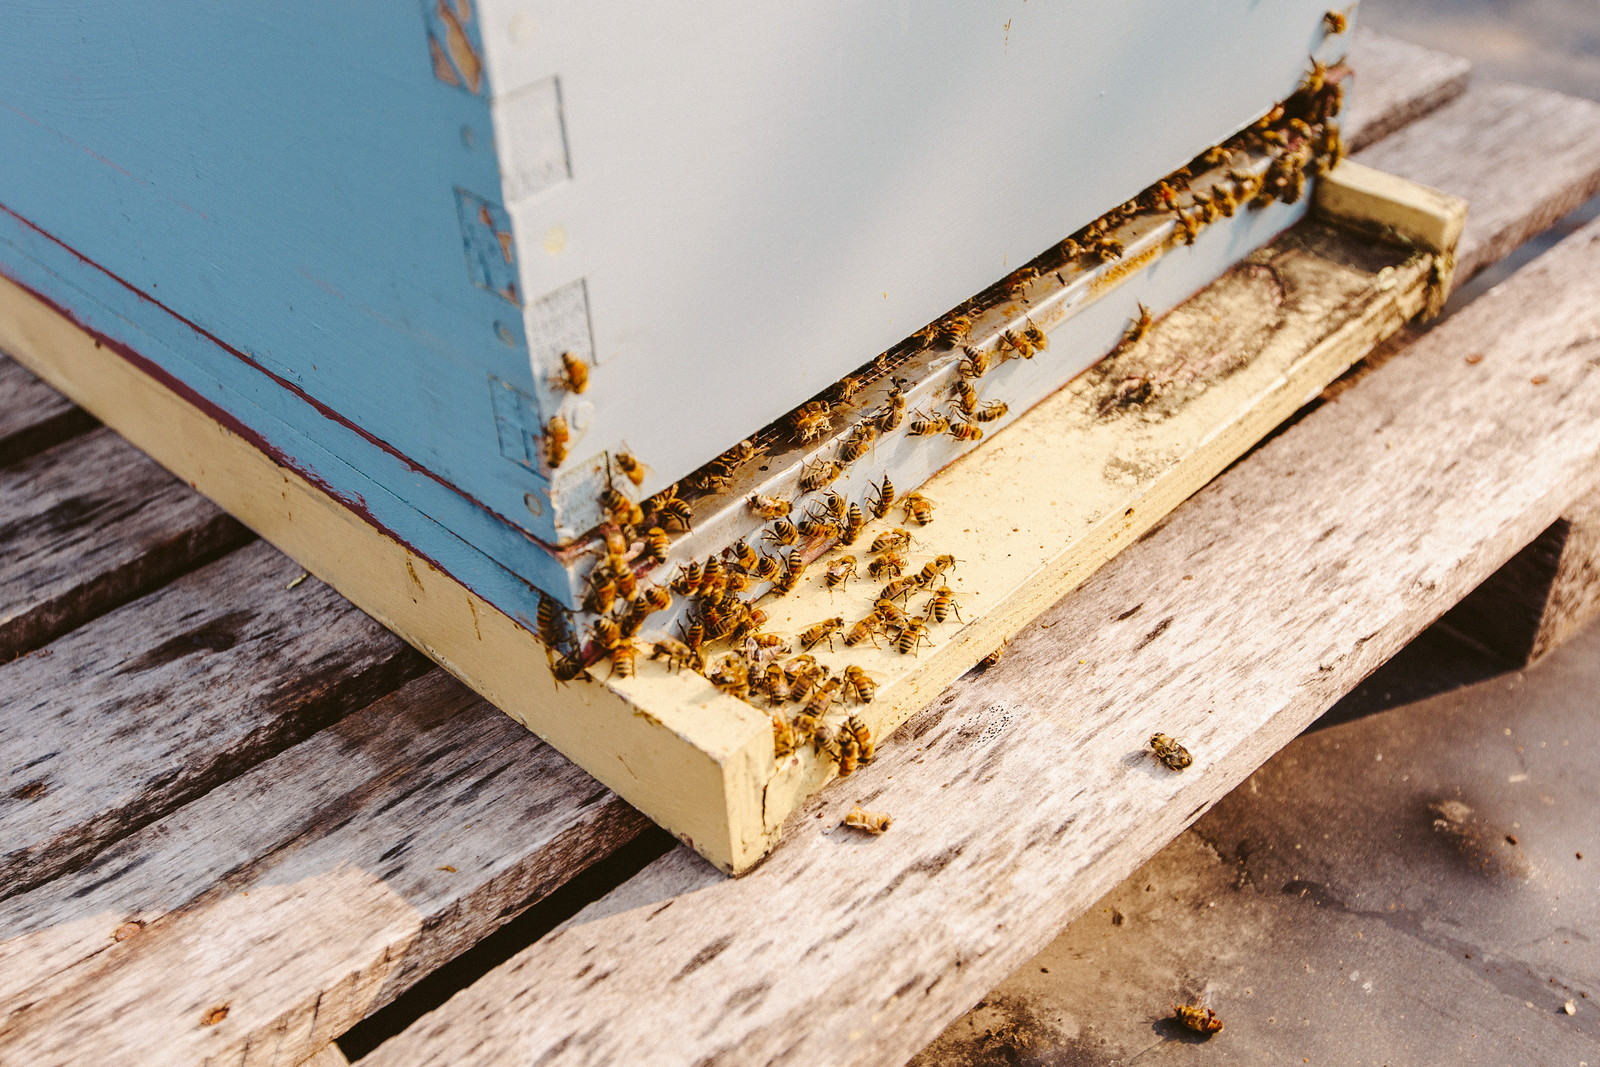 The average beehive will produce 150 pounds of honey annually.